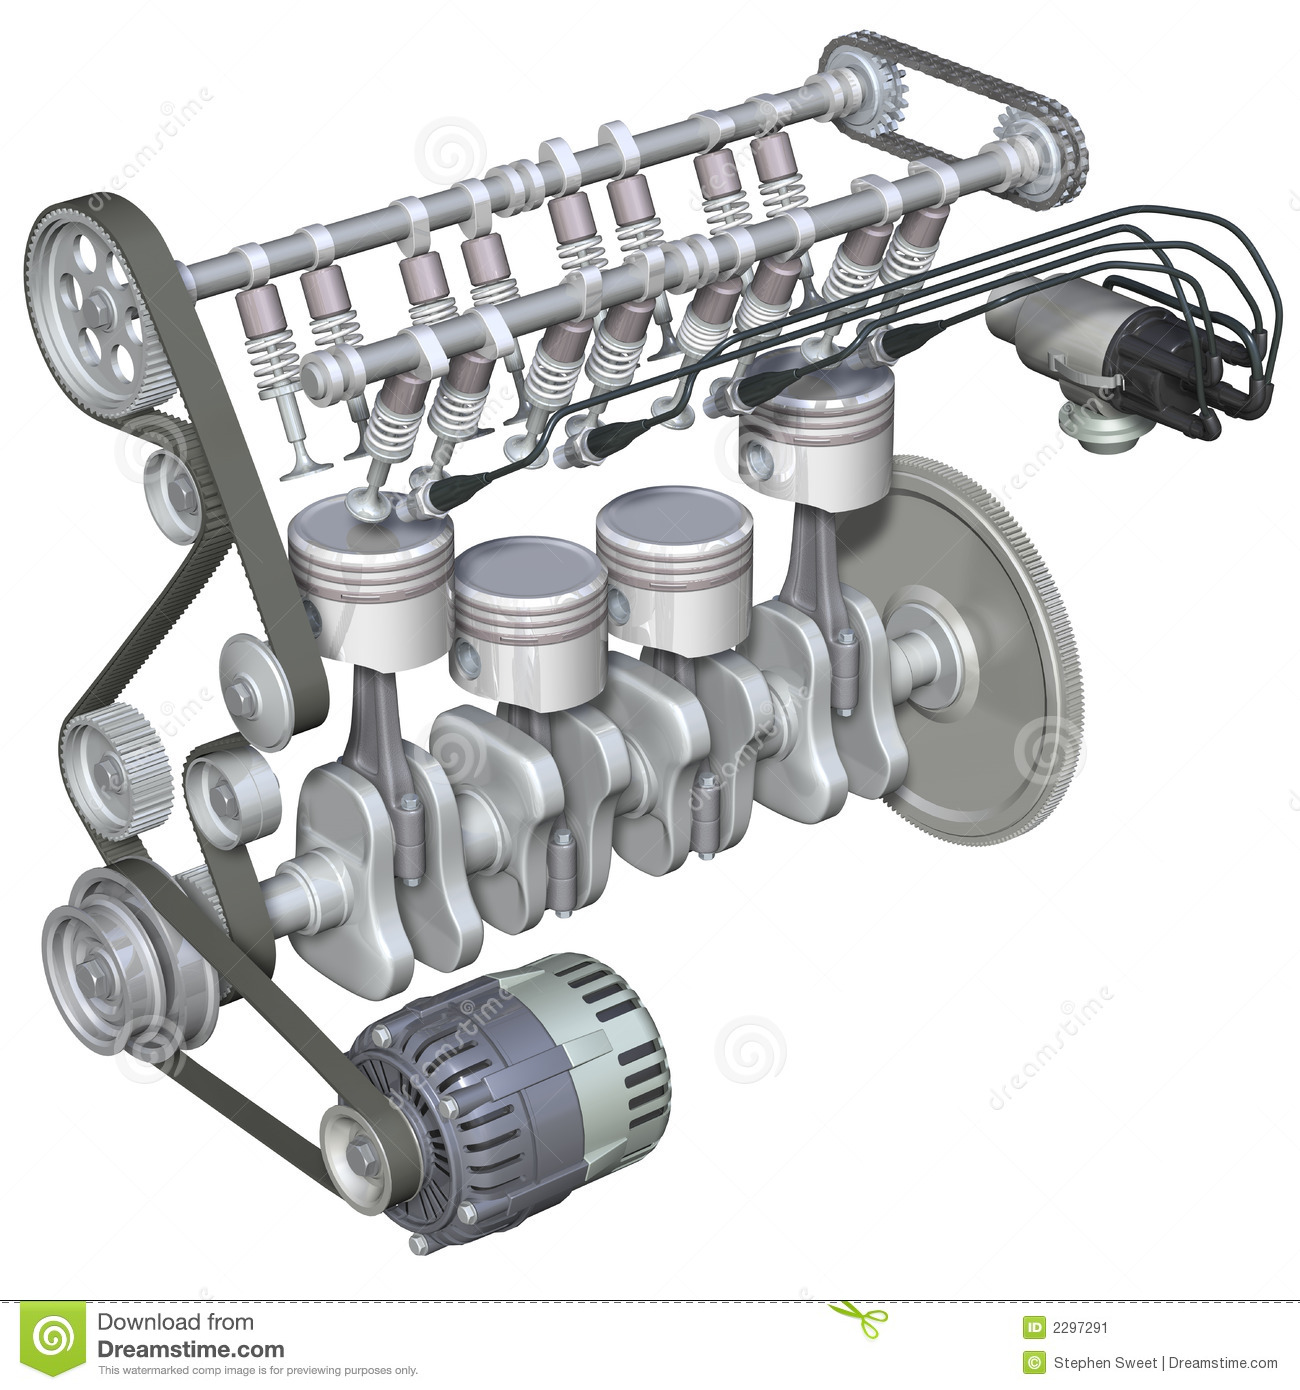 3d Illustration Of The Internal Parts Of A Four Stroke Petrol Engine